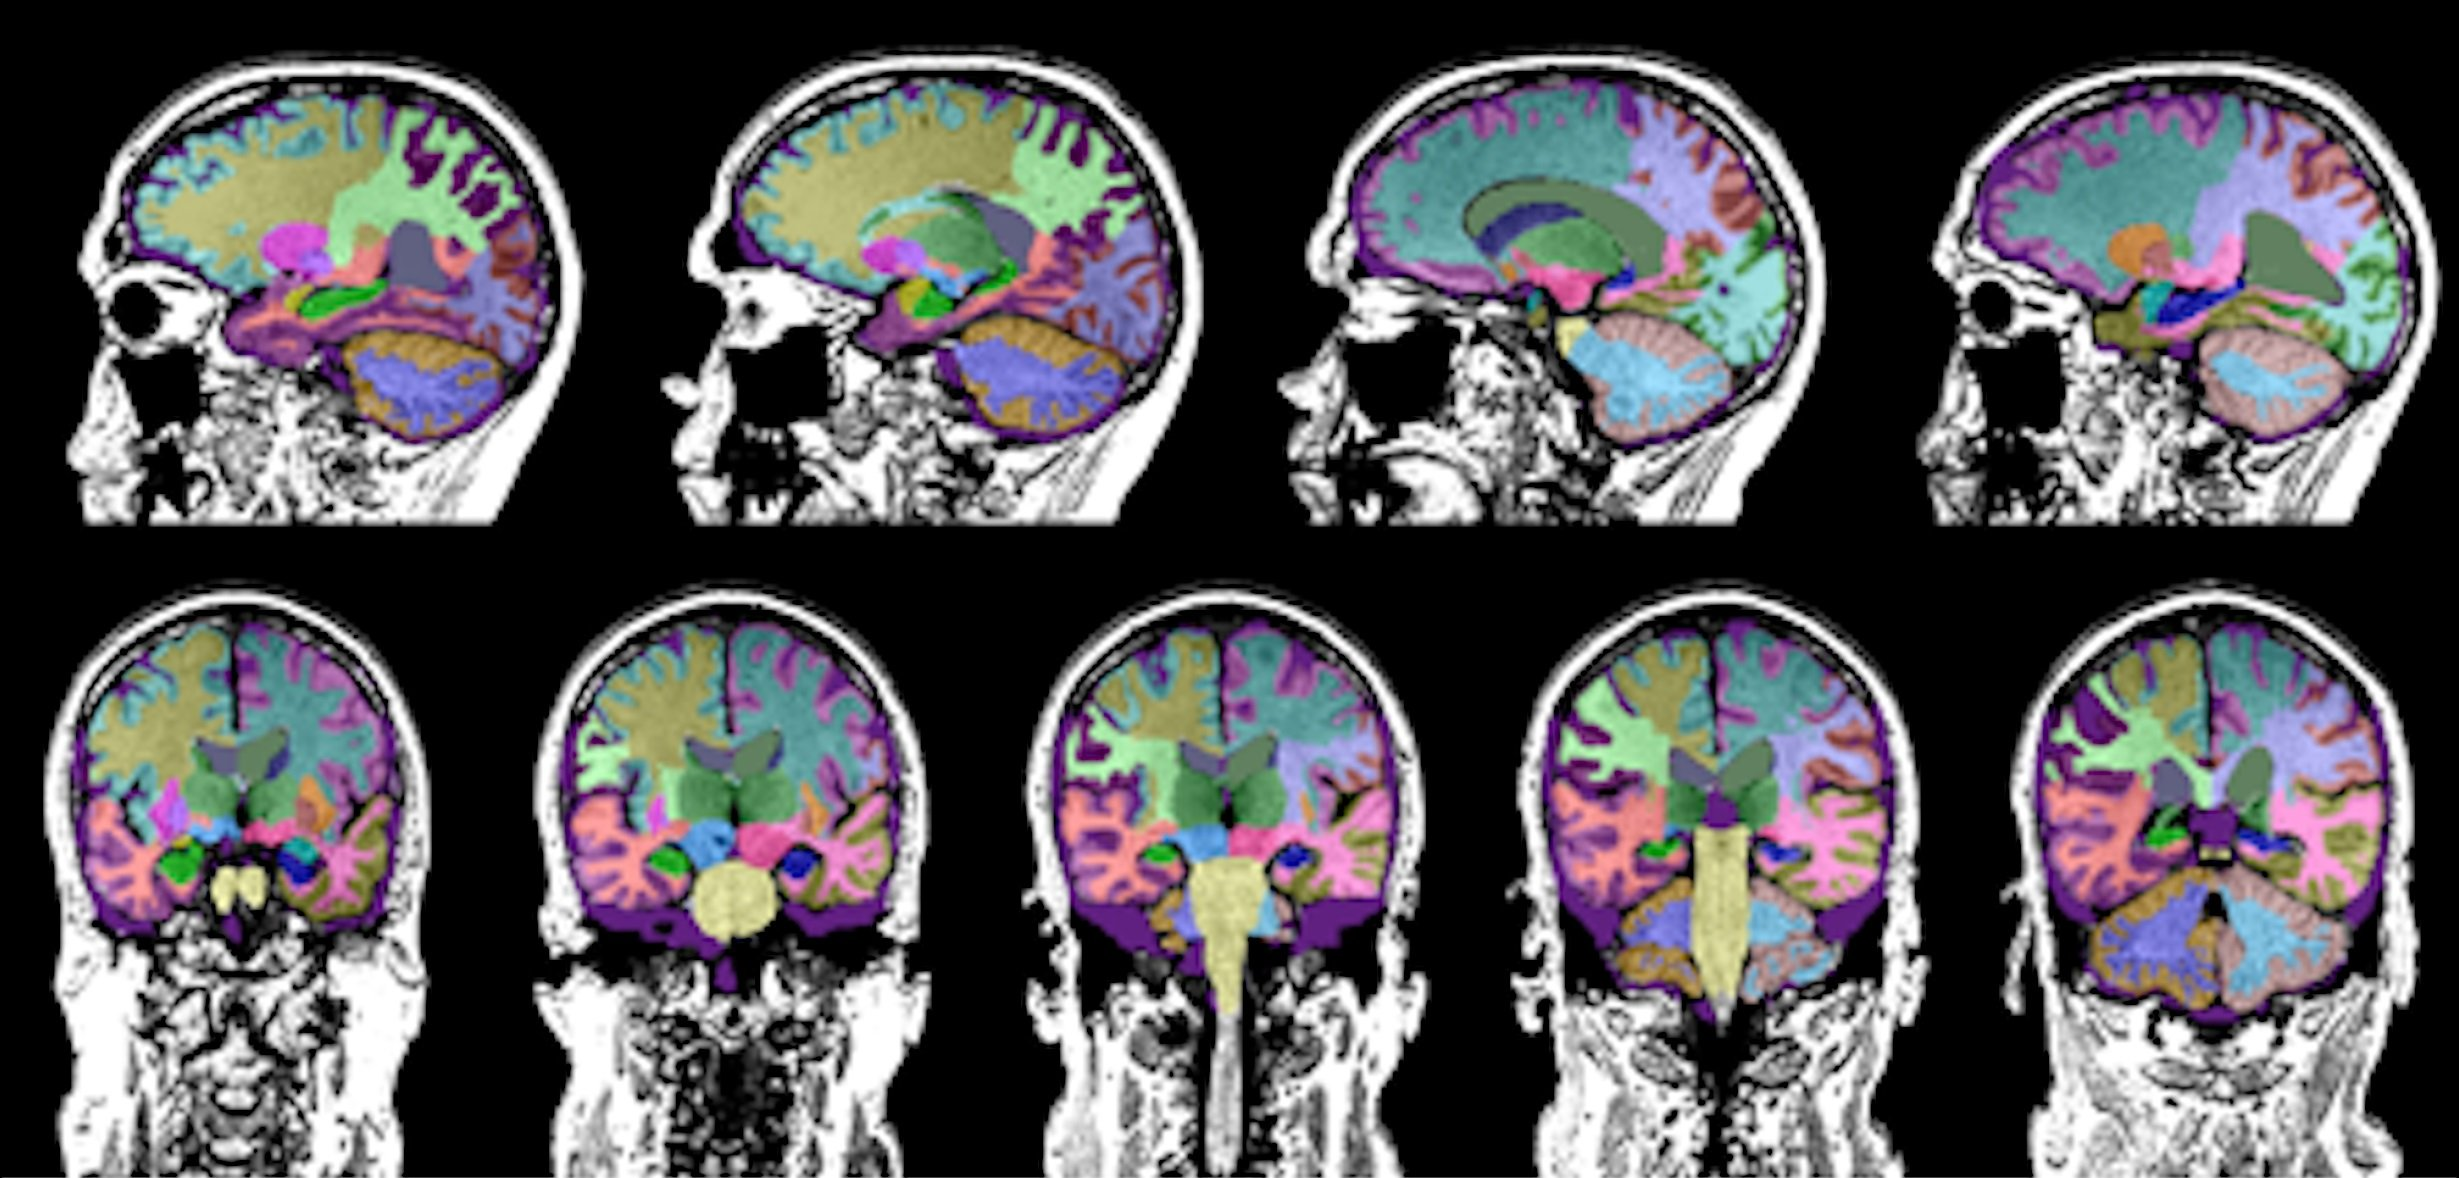 The Neuroreader software program quantifies brain volume in study participants with TBI